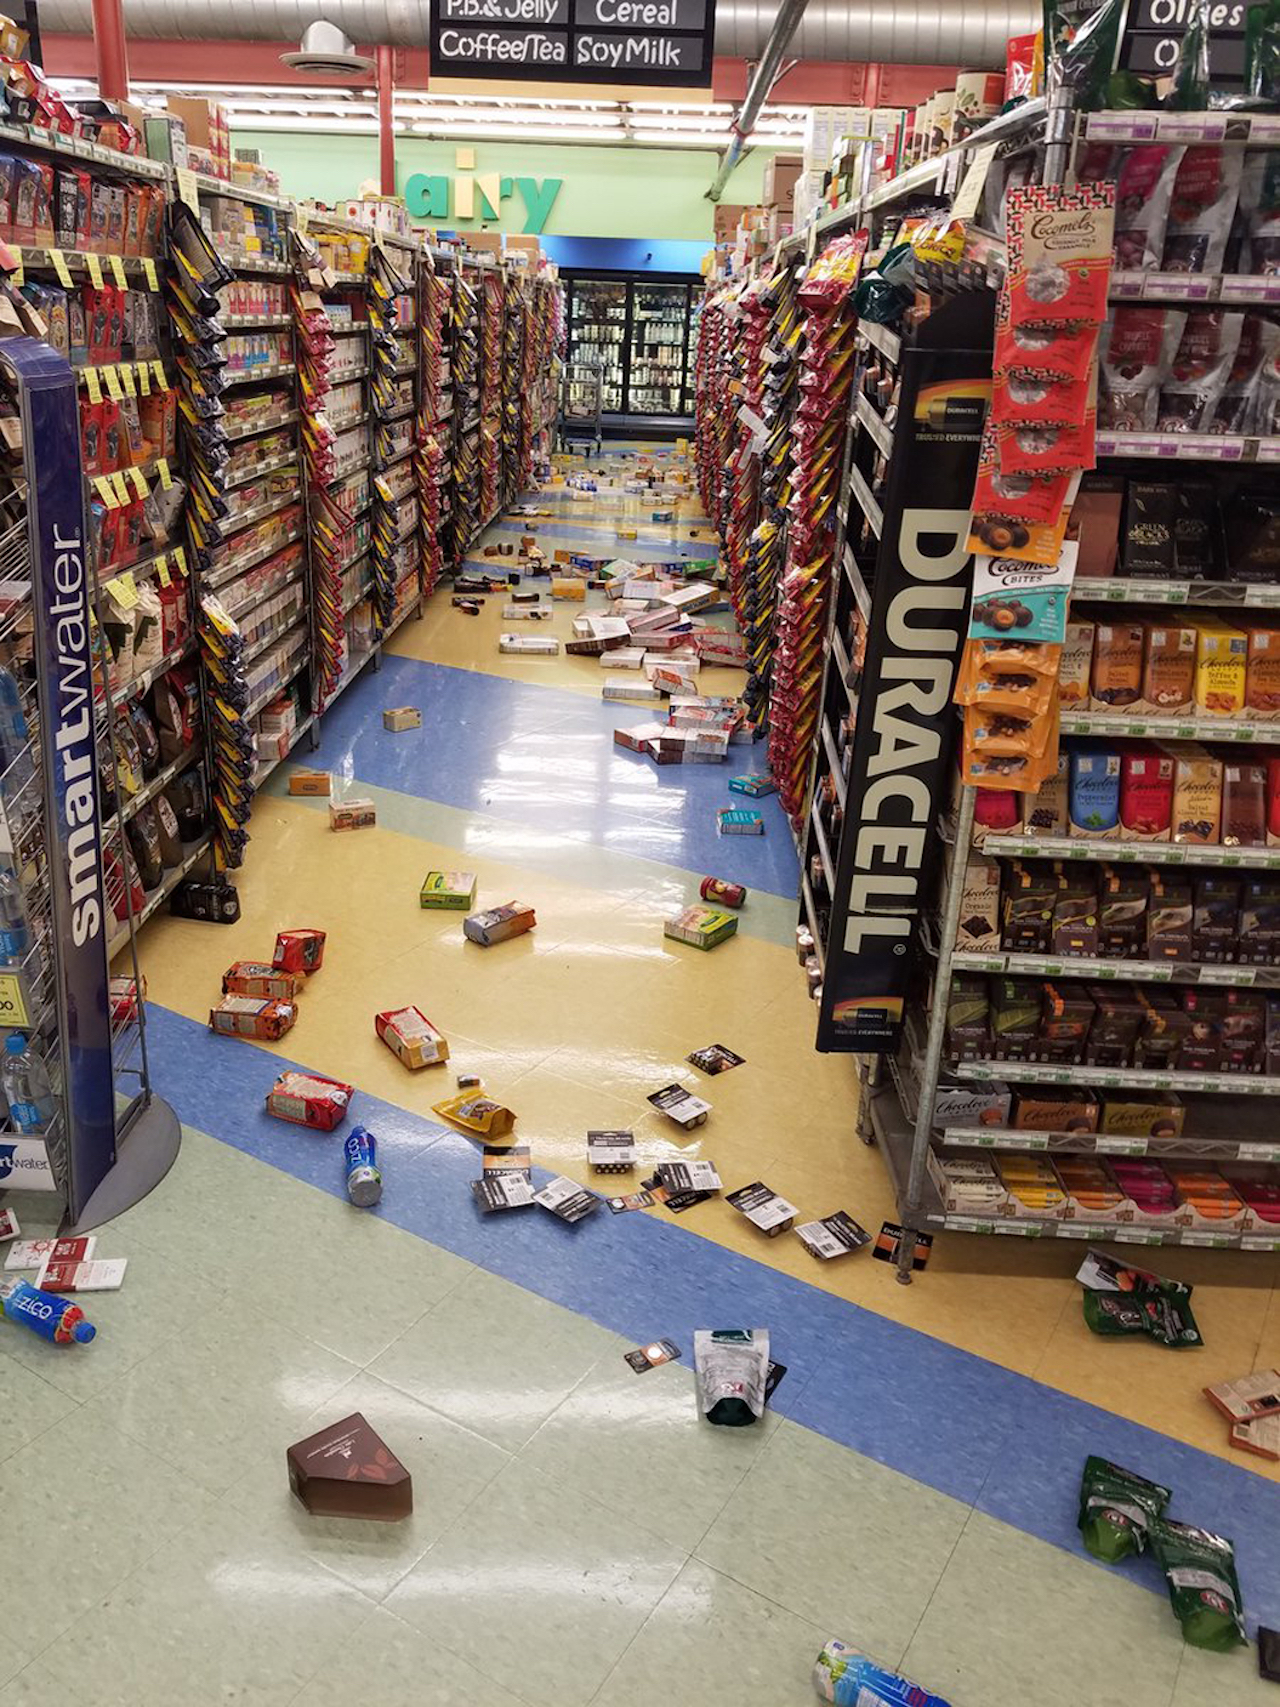 <div class='meta'><div class='origin-logo' data-origin='AP'></div><span class='caption-text' data-credit='David Harper via AP'>This photo provided by David Harper shows merchandise that fell off the shelves during an earthquake at a store in Anchorage, Alaska, on Friday, Nov. 30, 2018.</span></div>